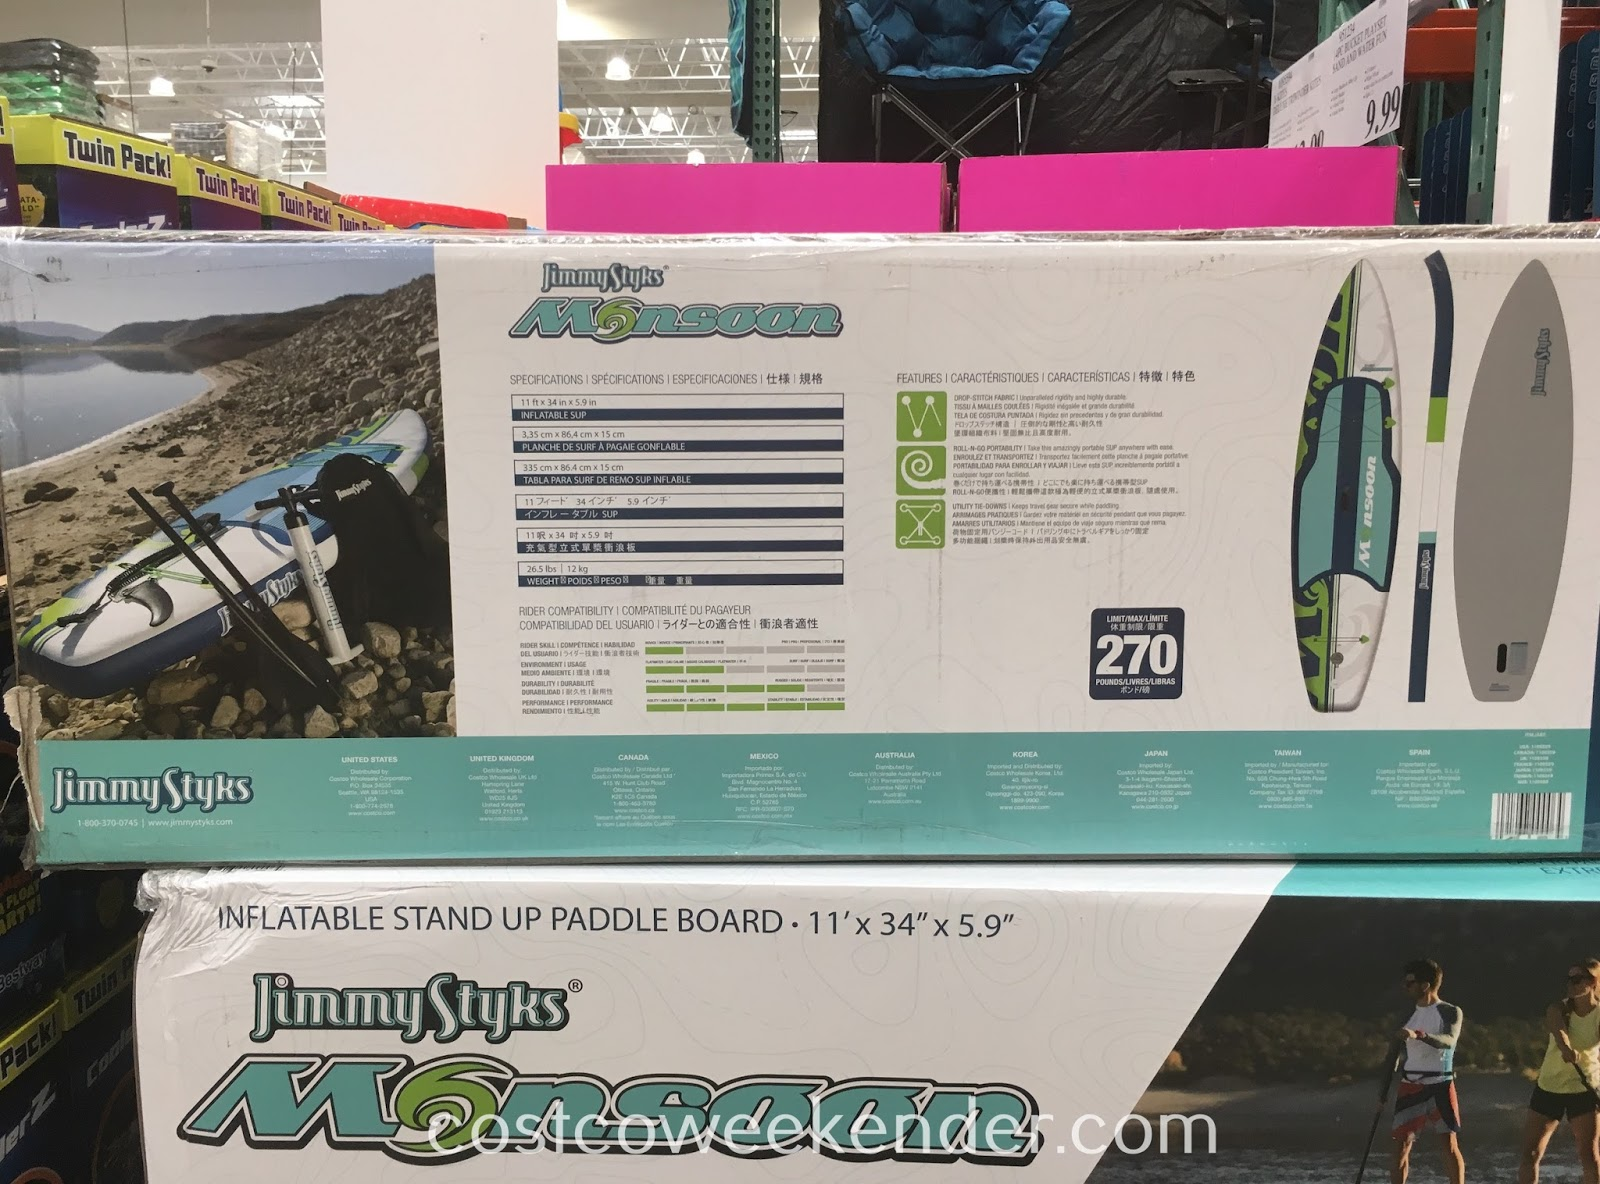 Costco 1109359 - Jimmy Styks Monsoon Inflatable Stand Up Paddle Board: great for an active lifestyle